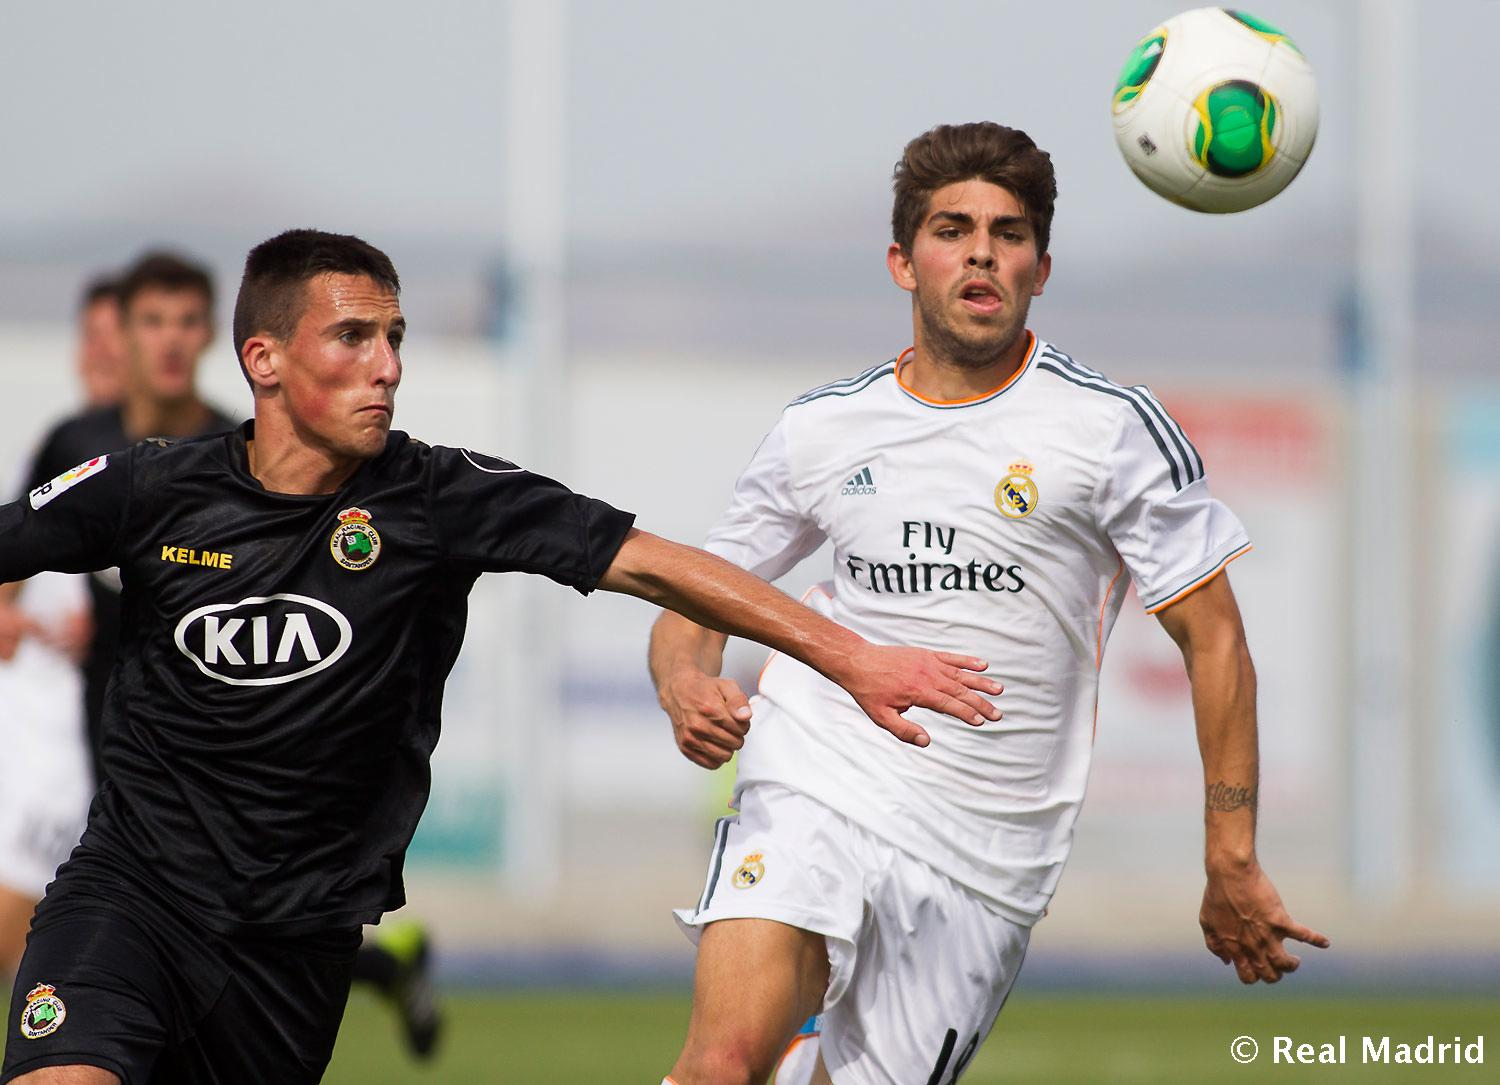 Real Madrid - Juvenil A - Racing de Santander - 07-05-2014